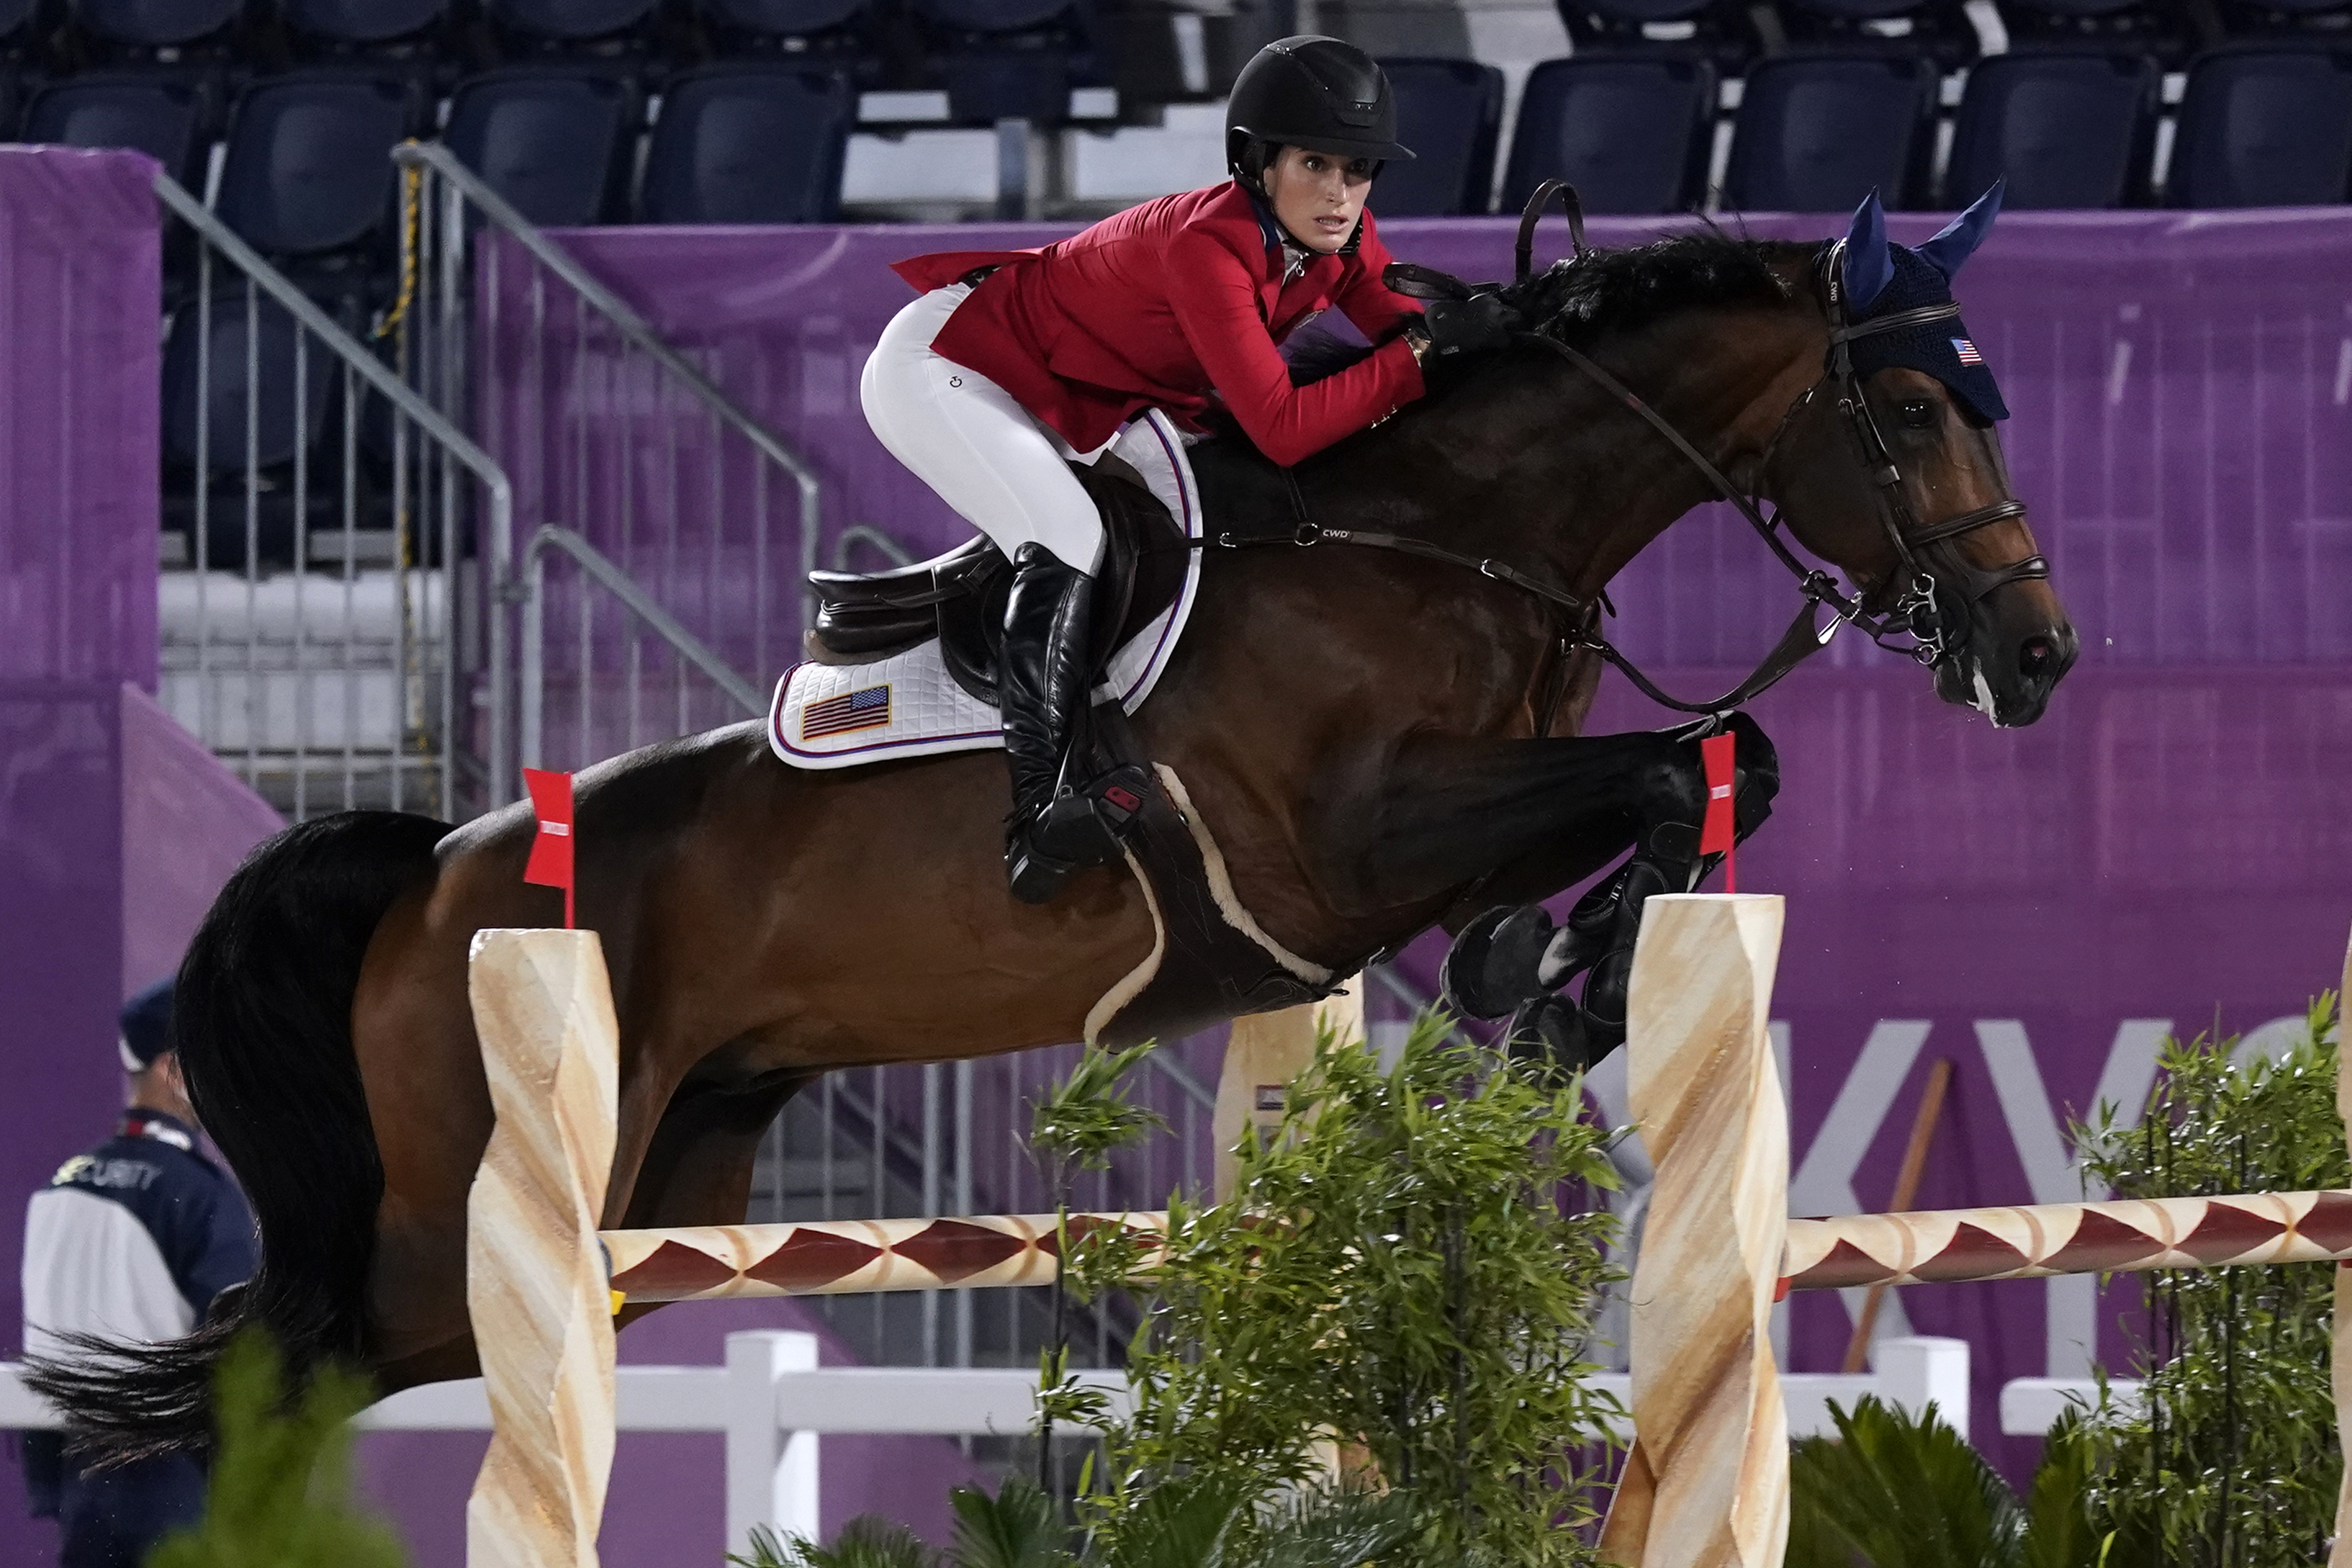 United States' Jessica Springsteen, riding Don Juan van de Donkhoeve, competes during the equestrian jumping individual qualifying at the Tokyo Olympics.